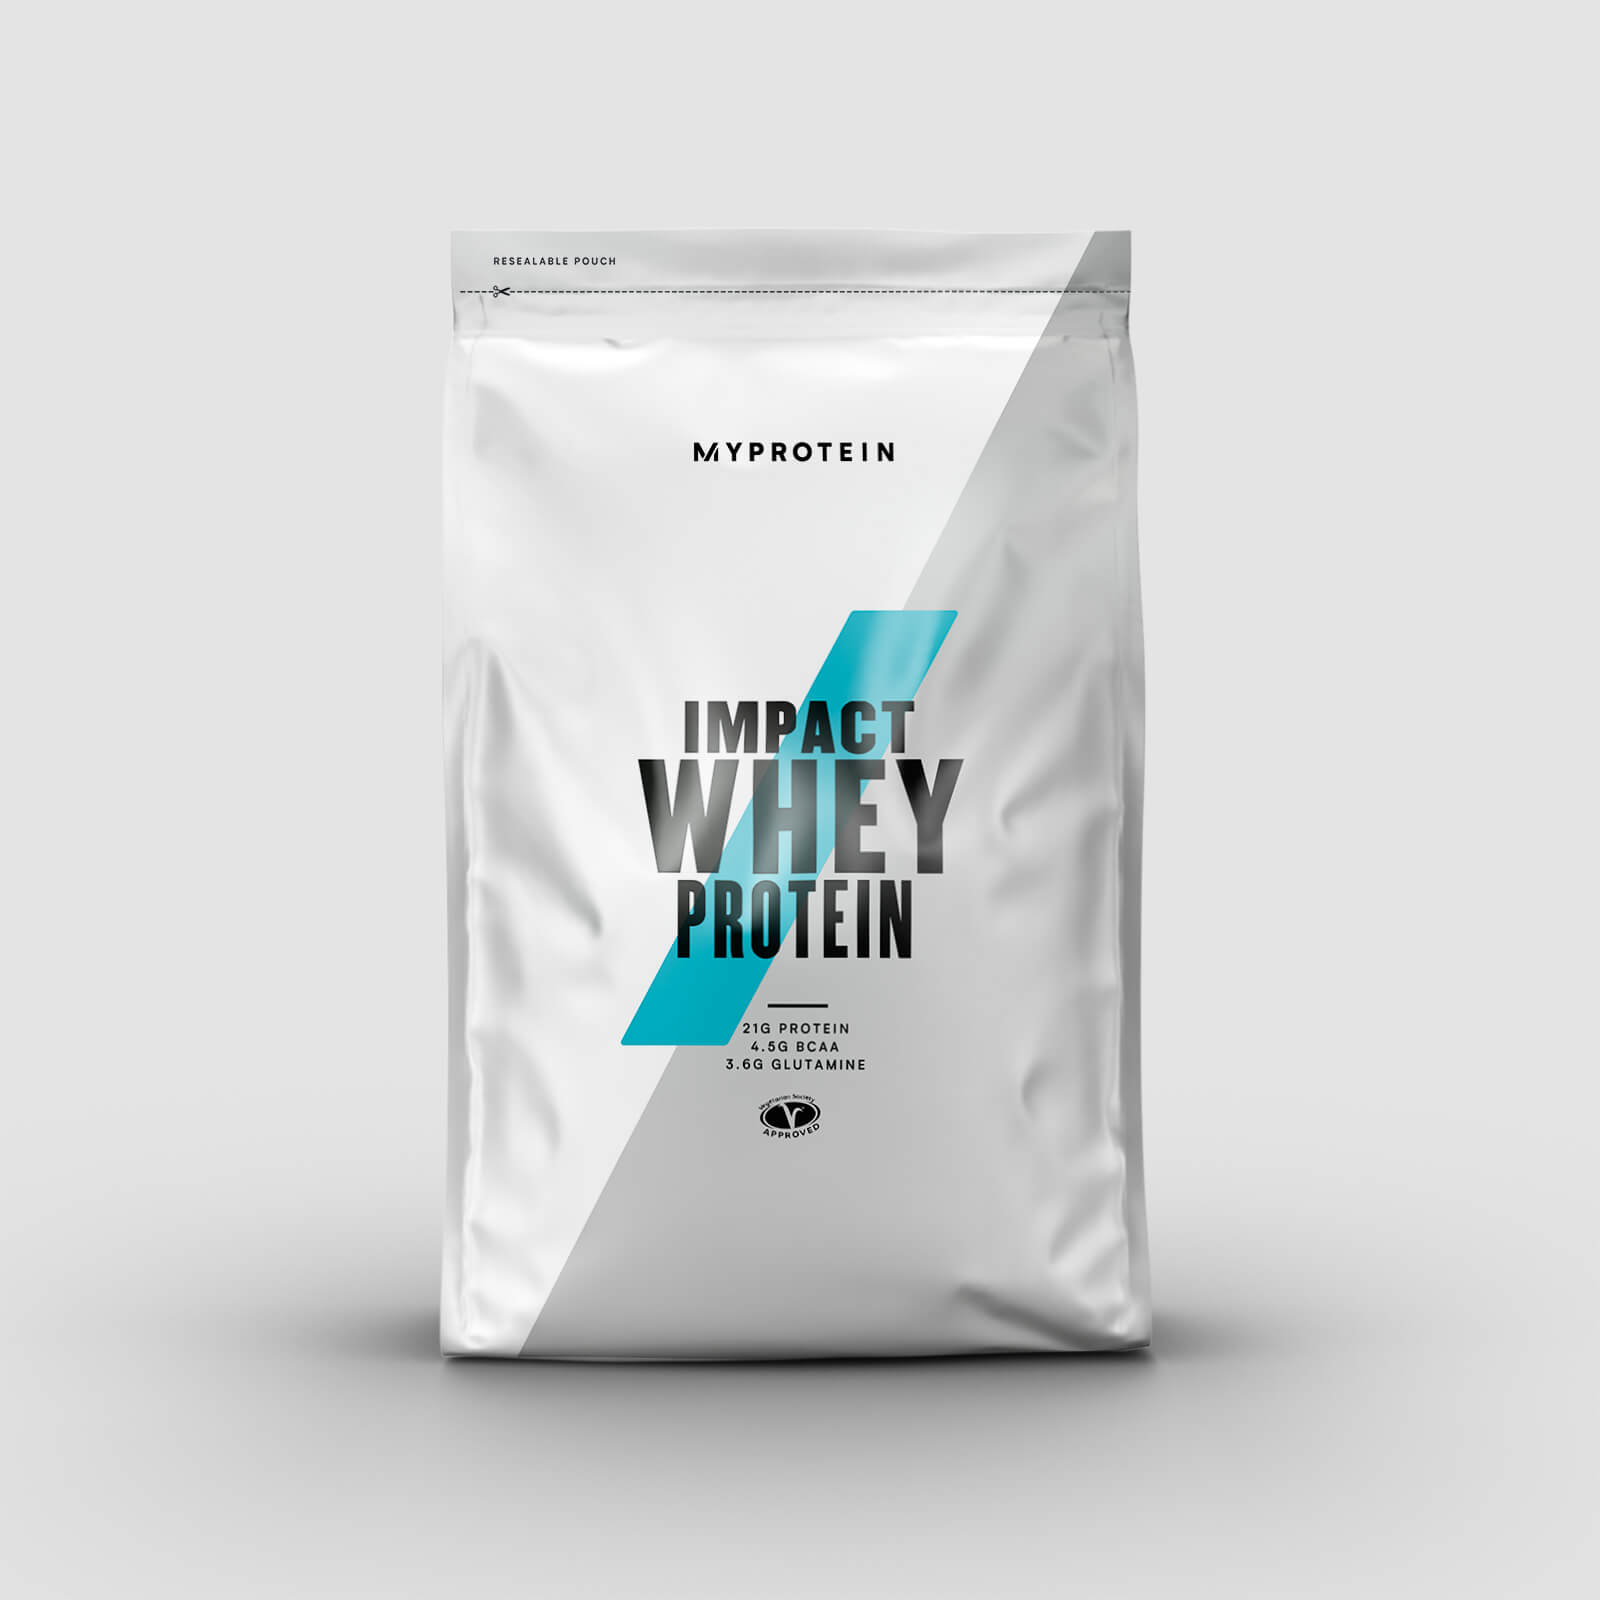 Impact Whey Protein, 1kg - Unflavoured